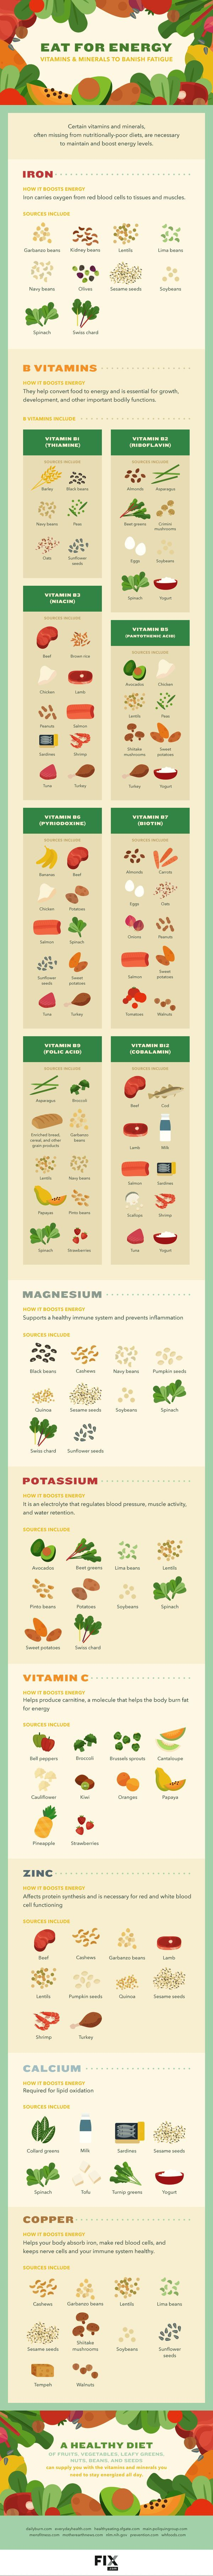 Need an energy boost in your life? Make sure to incorporate these healthy foods in your diet!